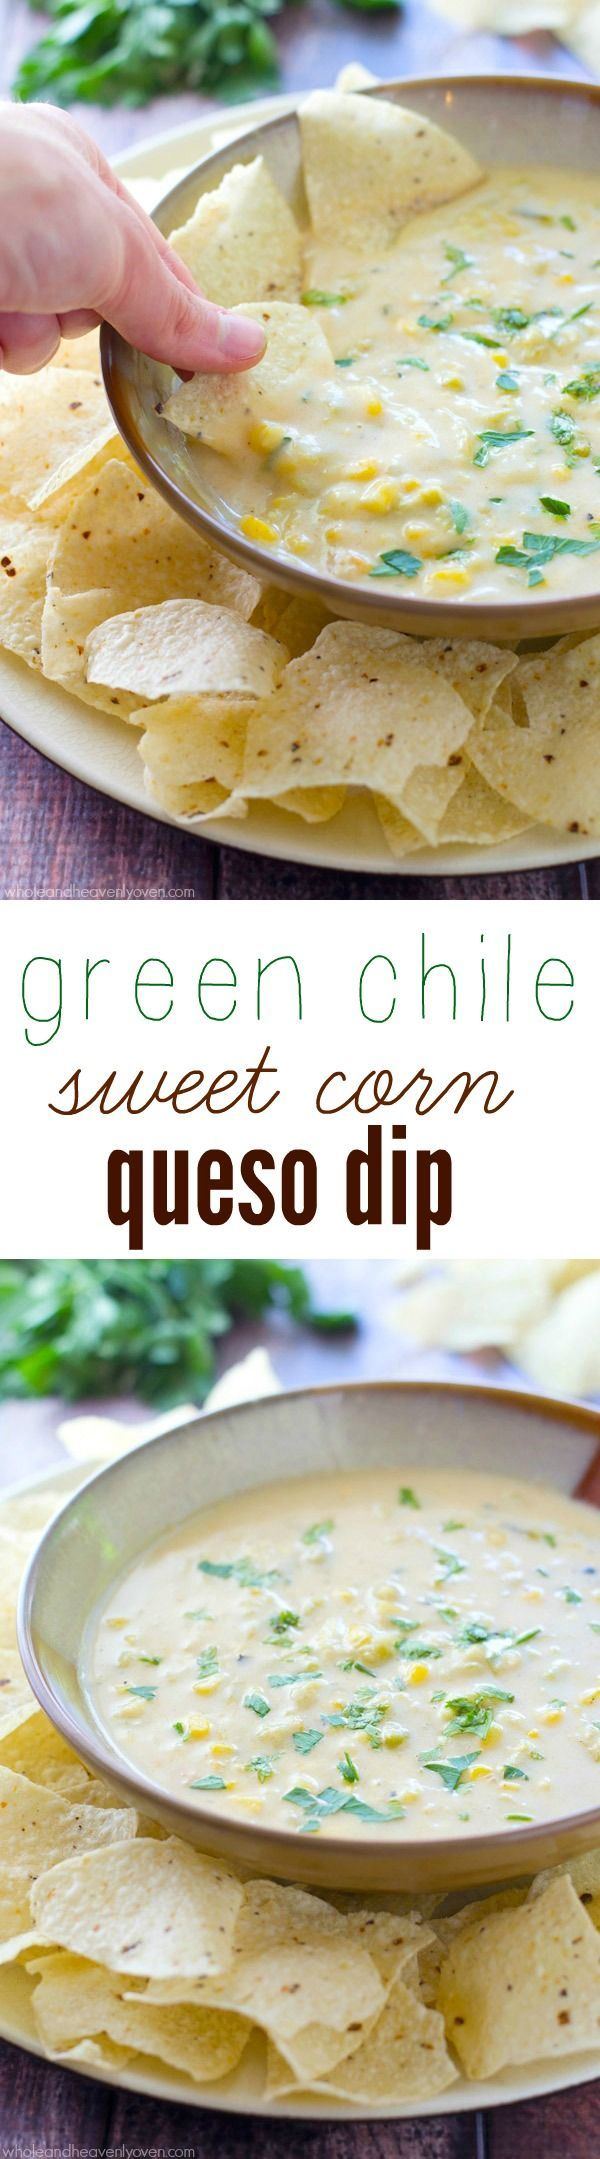 ... chiles, this hot cheesy queso dip is nearly impossible to stop eating